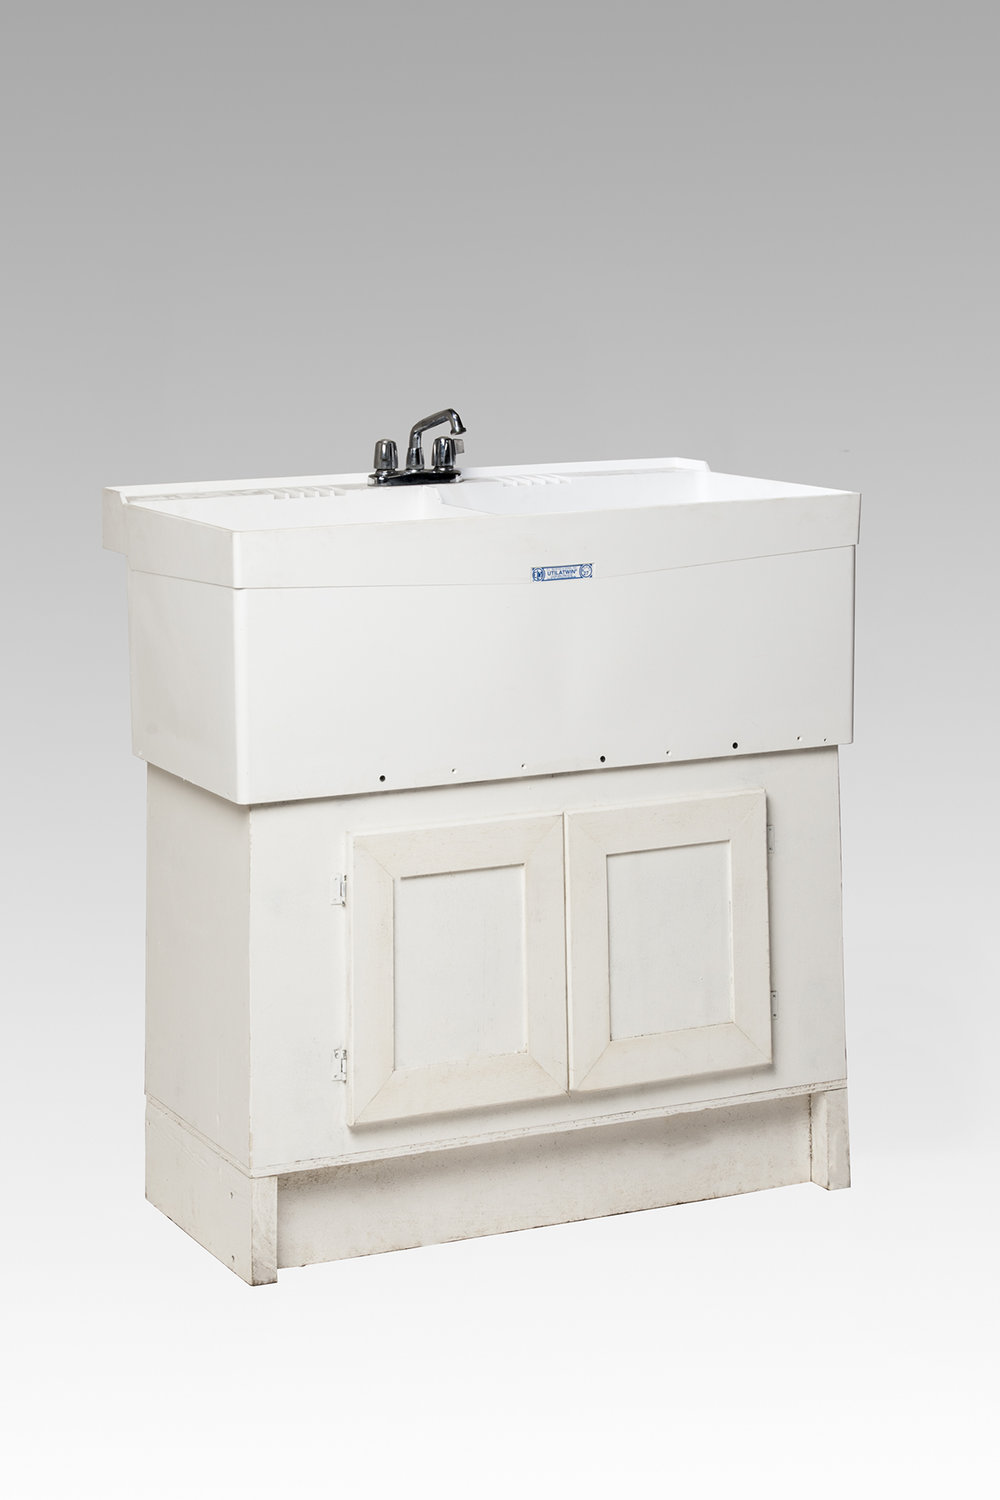 Hot Water Field Stewarding Sink (3 amps)  $250.00